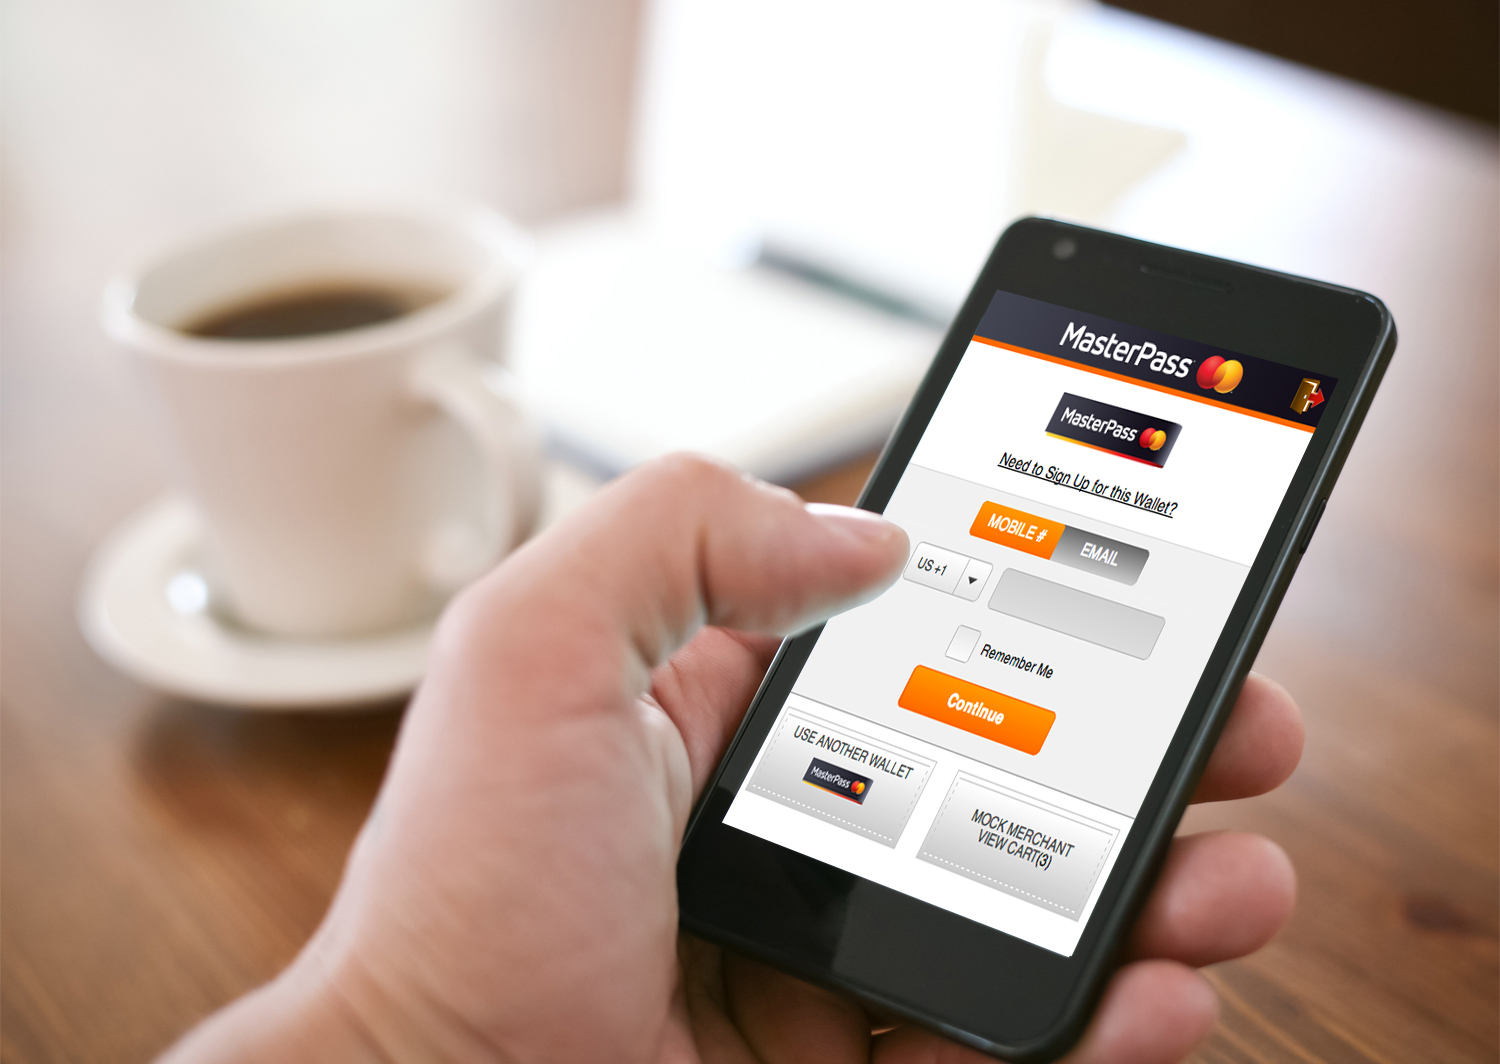 Mastercard Partners with Monitise for Digital Payment Services